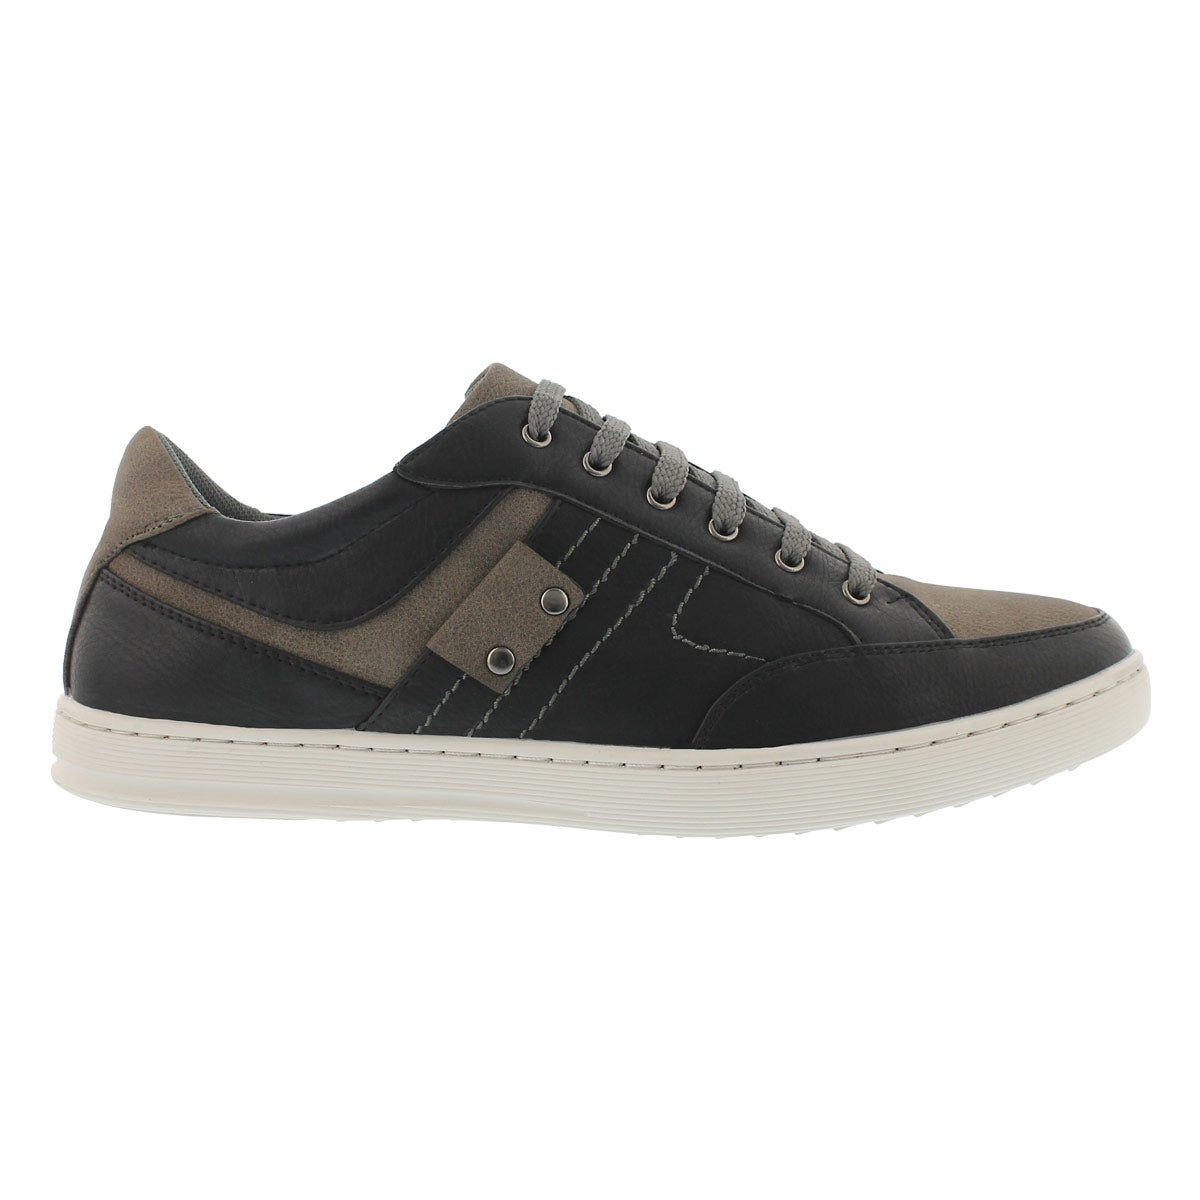 Mns Snap black/grey fashion sneaker